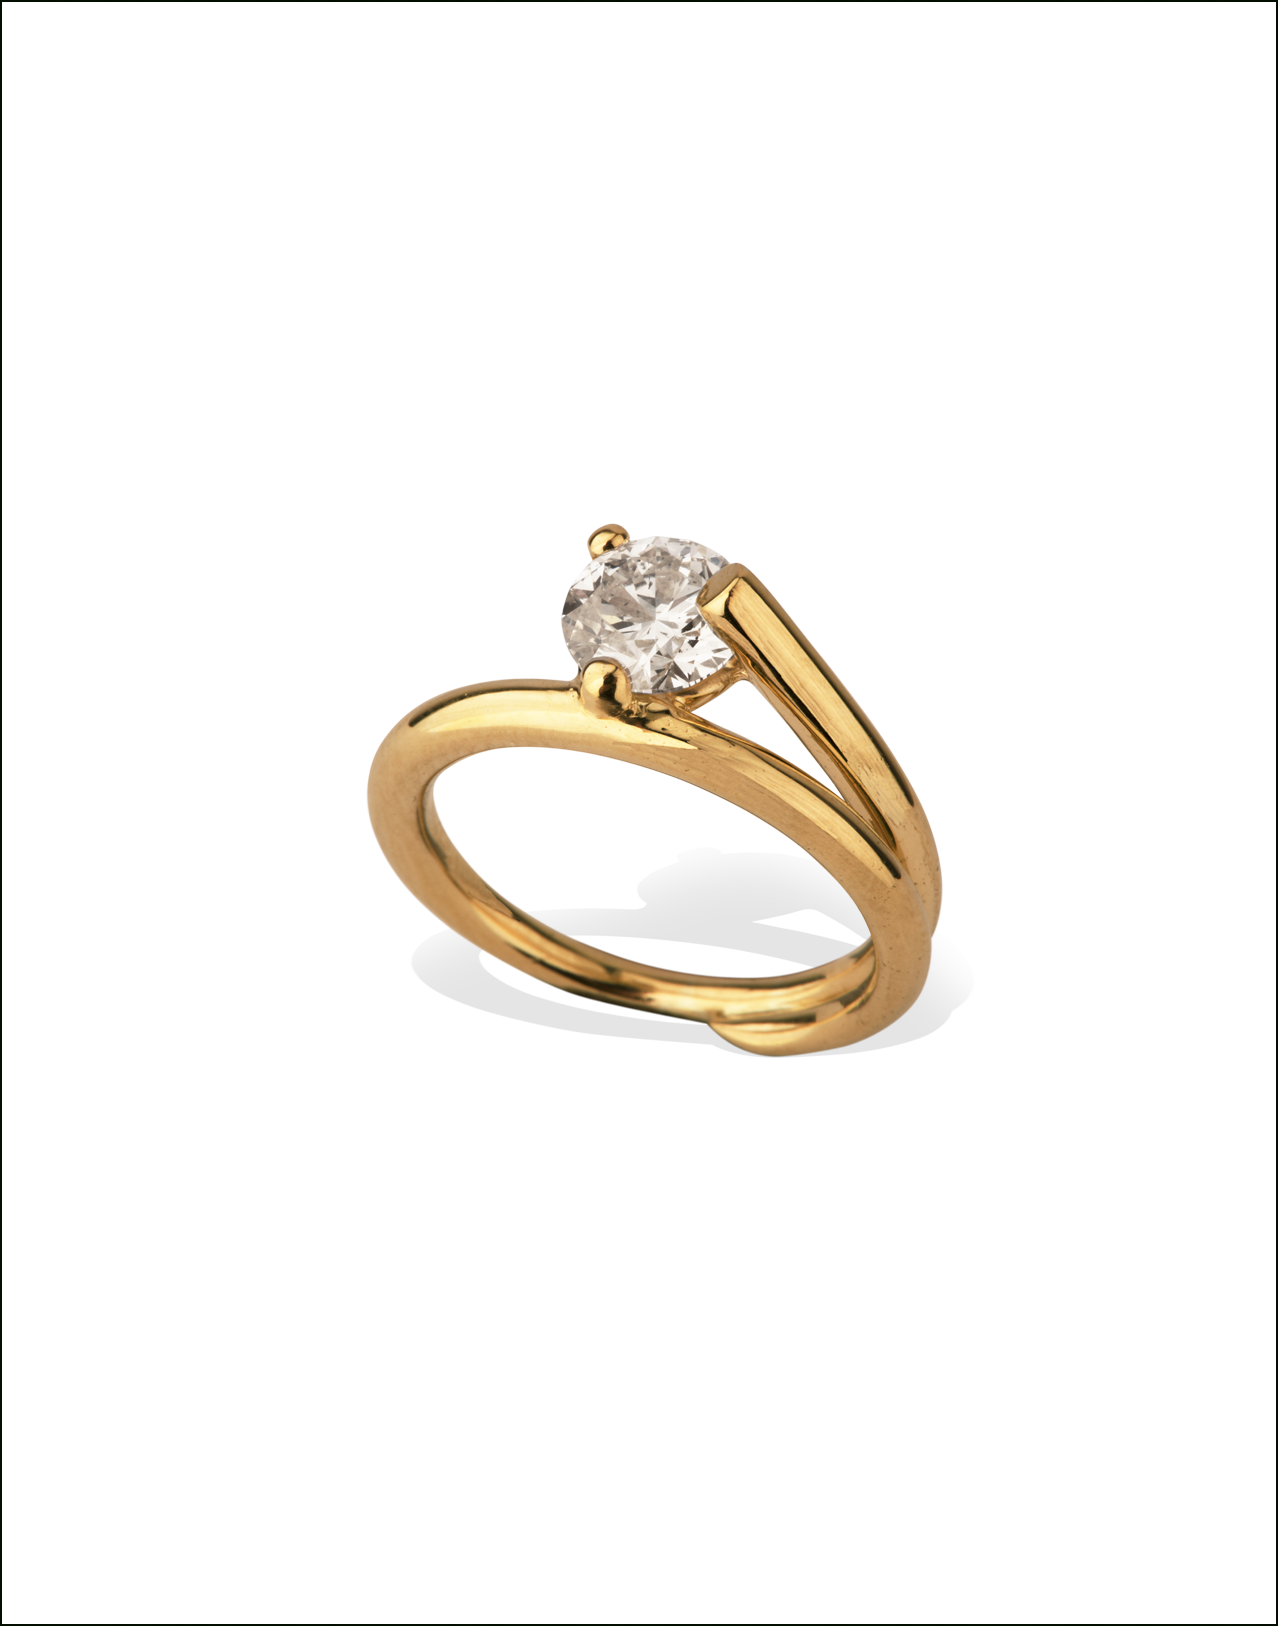 Completedworks-Subverted-Flower-Bridal-Ring-1-1.png